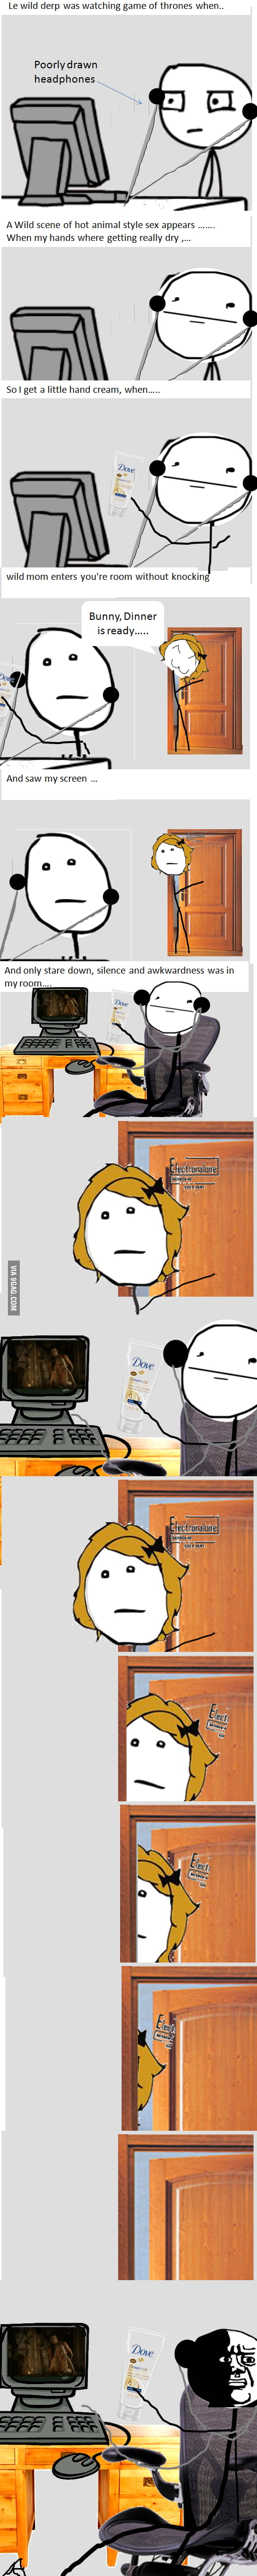 Caught watching Game of Thrones...